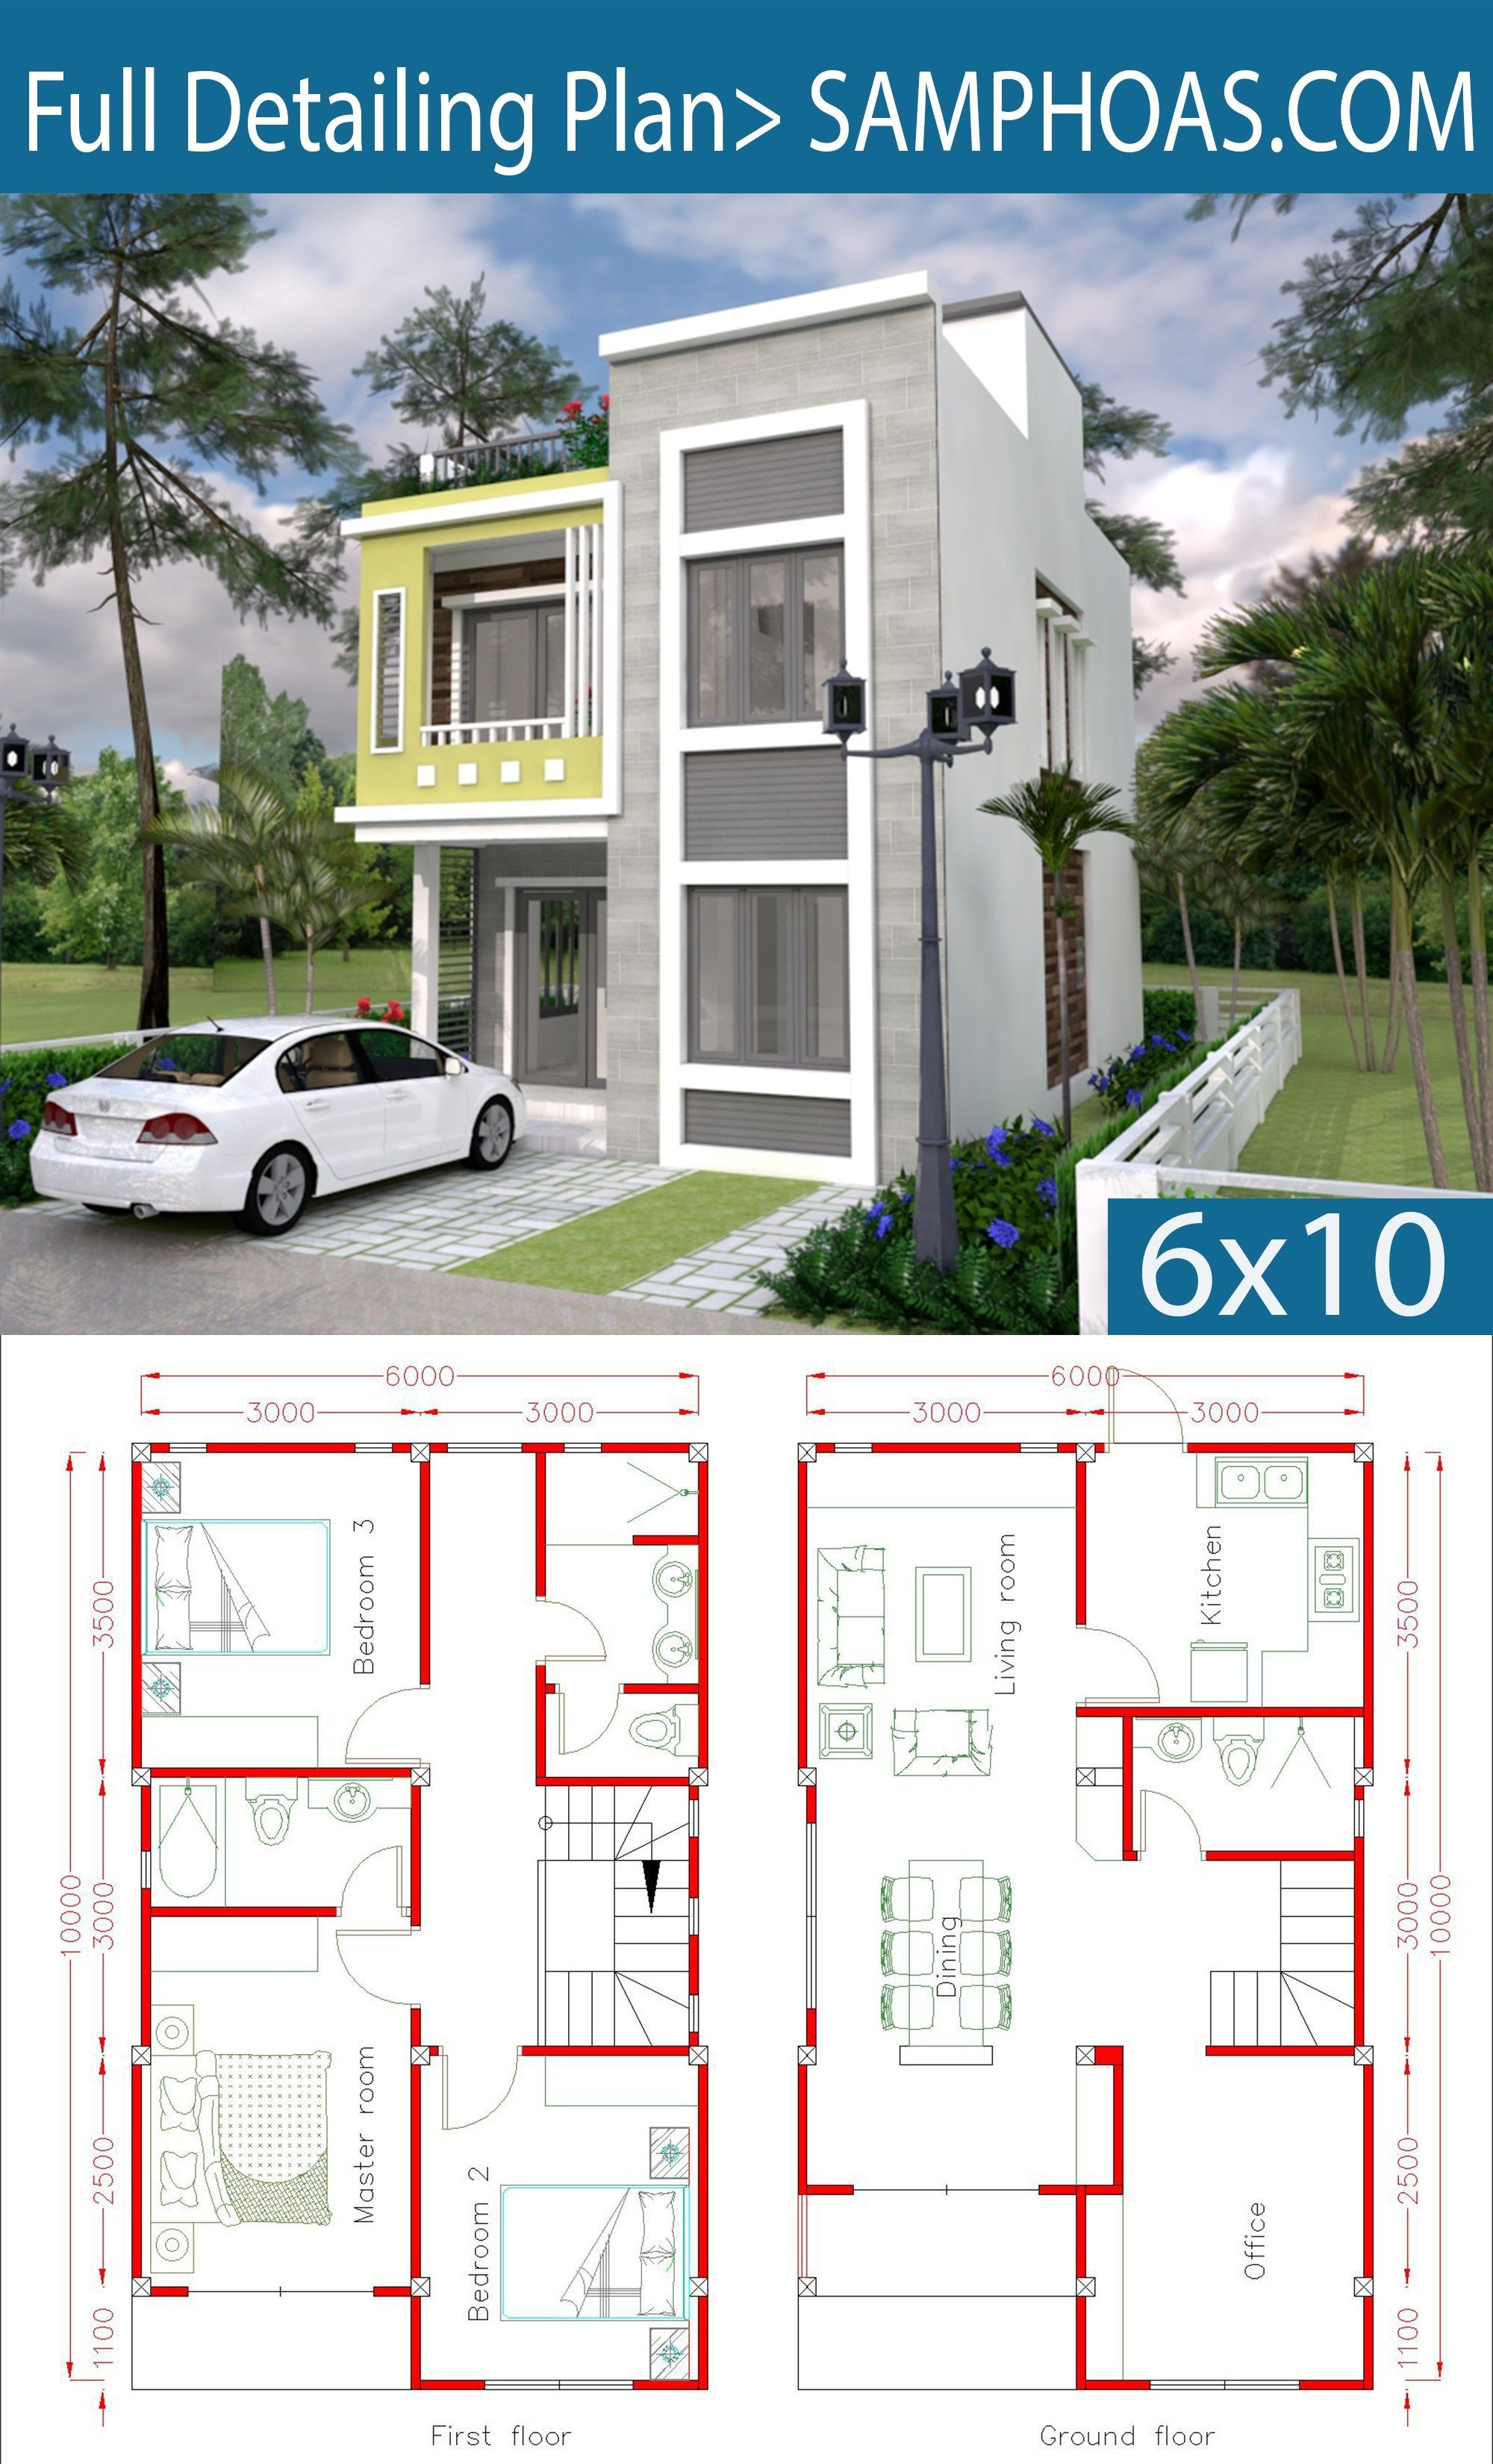 The House Has Small Garden Office Living Room Dining Room Kitchen 3 Bedrooms With 2 Bathrooms 1 G Model House Plan Duplex House Plans House Plans